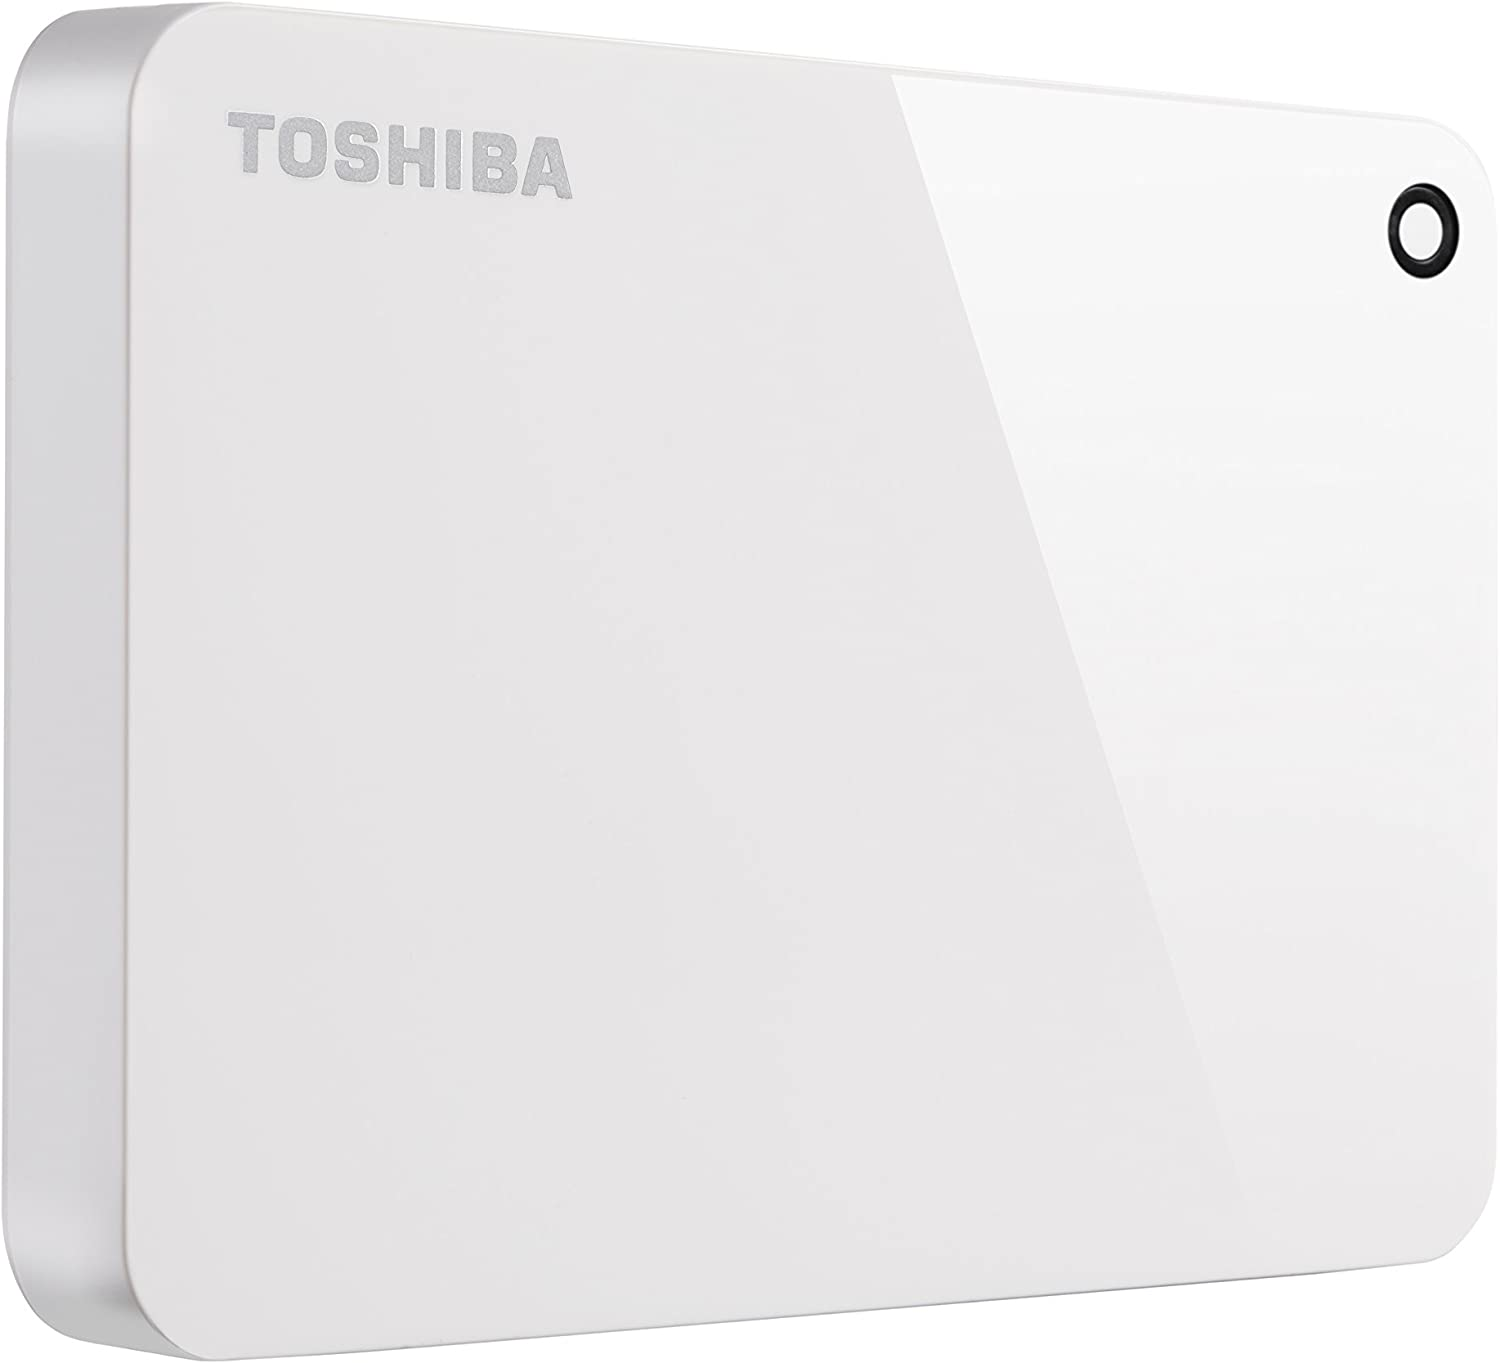 Toshiba (HDTC910XW3AA) Canvio Advance 1TB Portable External Hard Drive USB 3.0, White